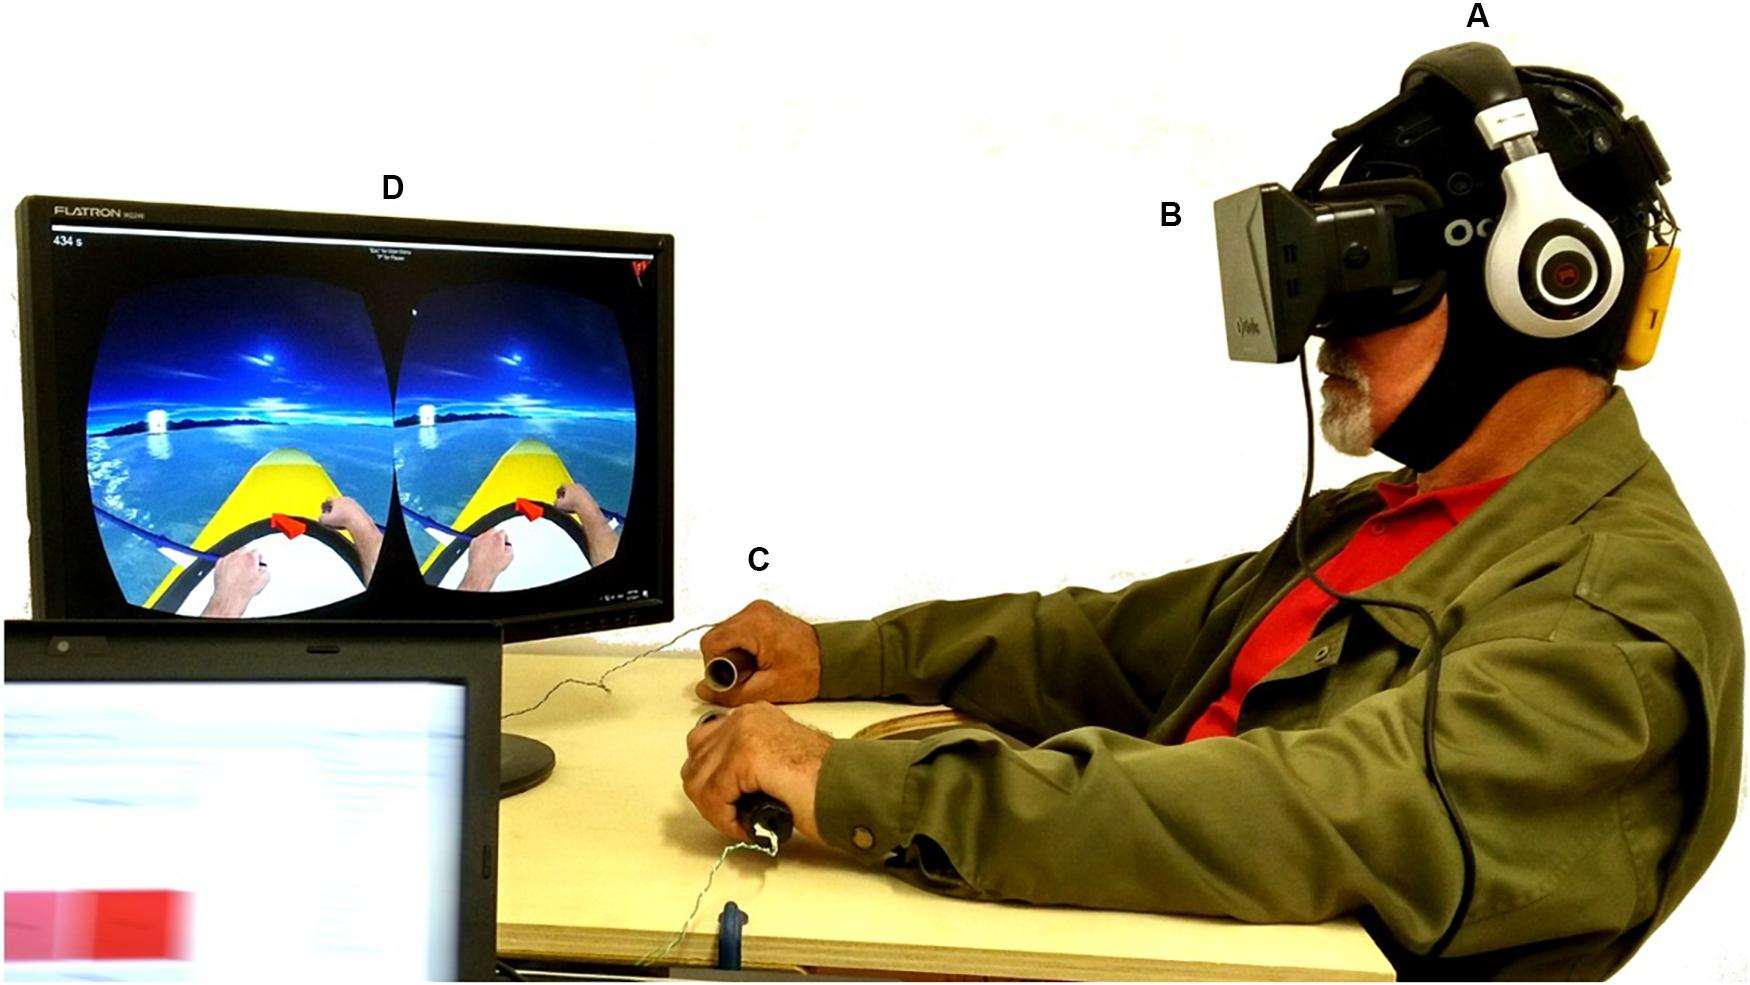 [ARTICLE] Efficacy and Brain Imaging Correlates of an Immersive Motor Imagery BCI-Driven VR System for Upper Limb Motor Rehabilitation: A Clinical Case Report – Full Text